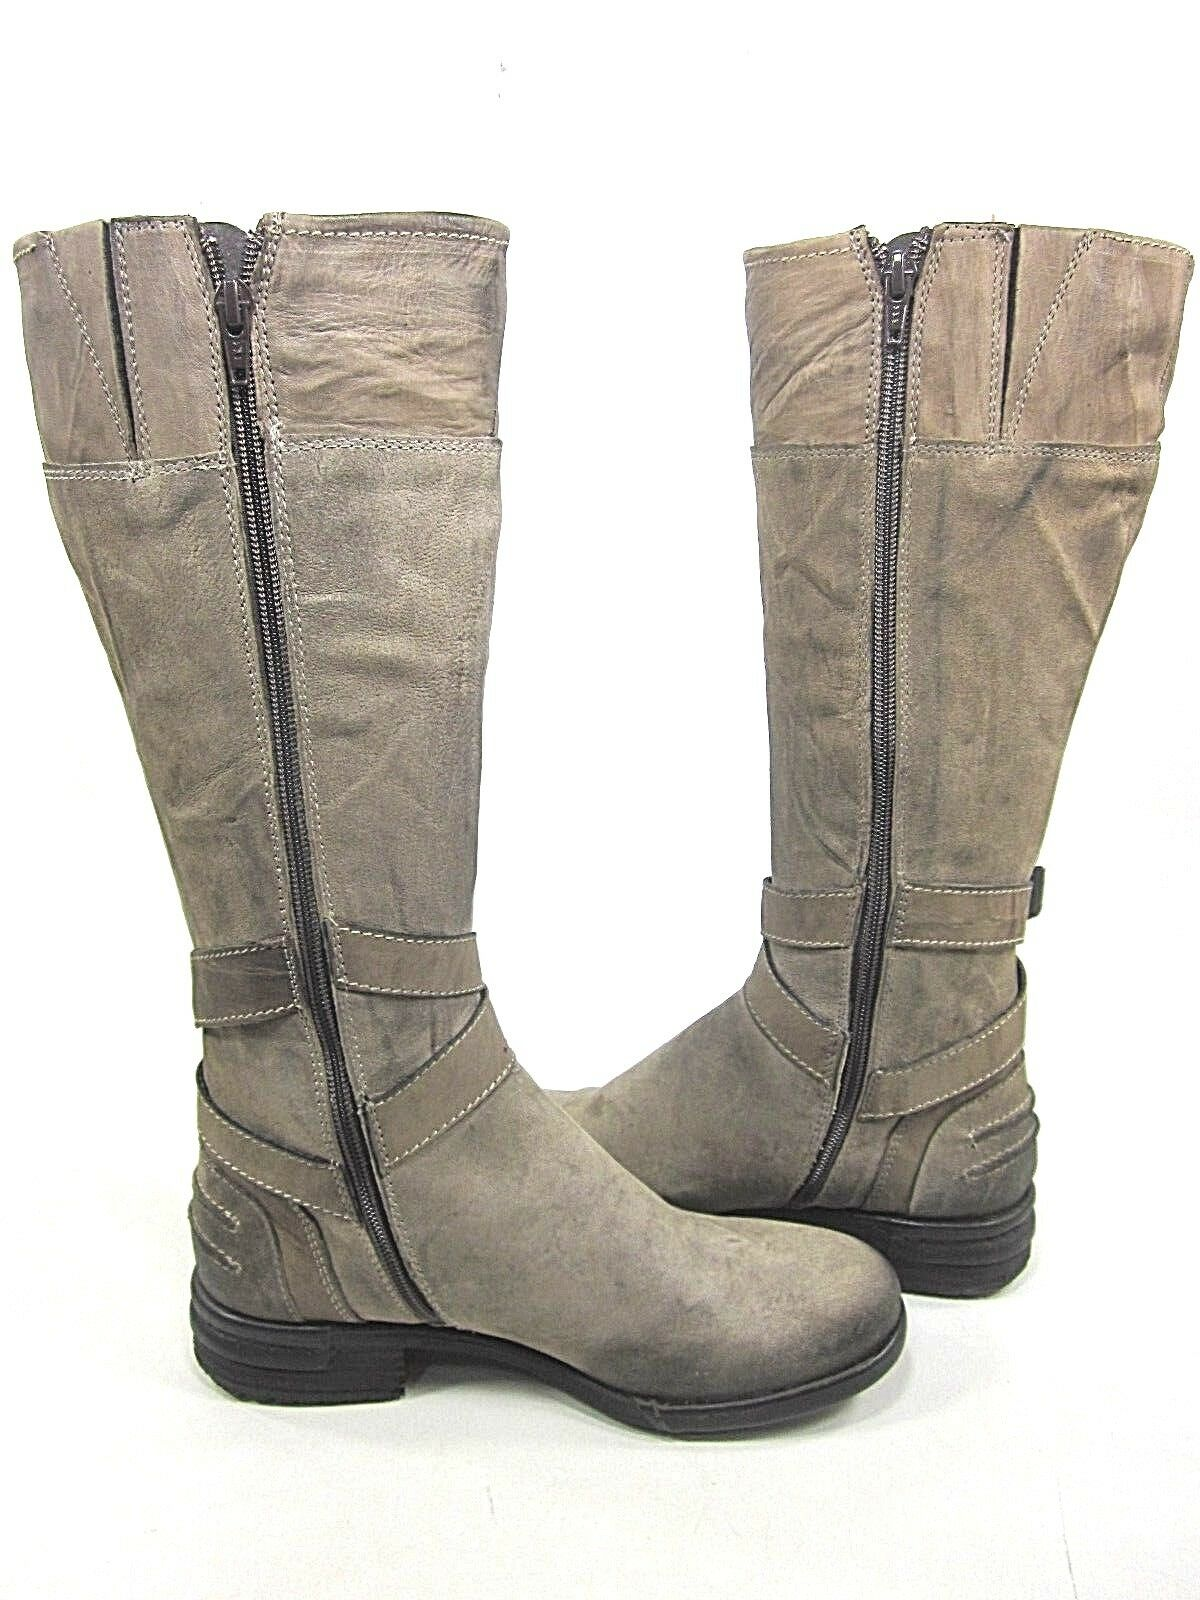 KHRIO BY JOSEPH GRIFFIN, 20509 BOOT, WOMEN'S, FISIERE KOALA, US US US 6M, NEW  DISPLAY 43adf0